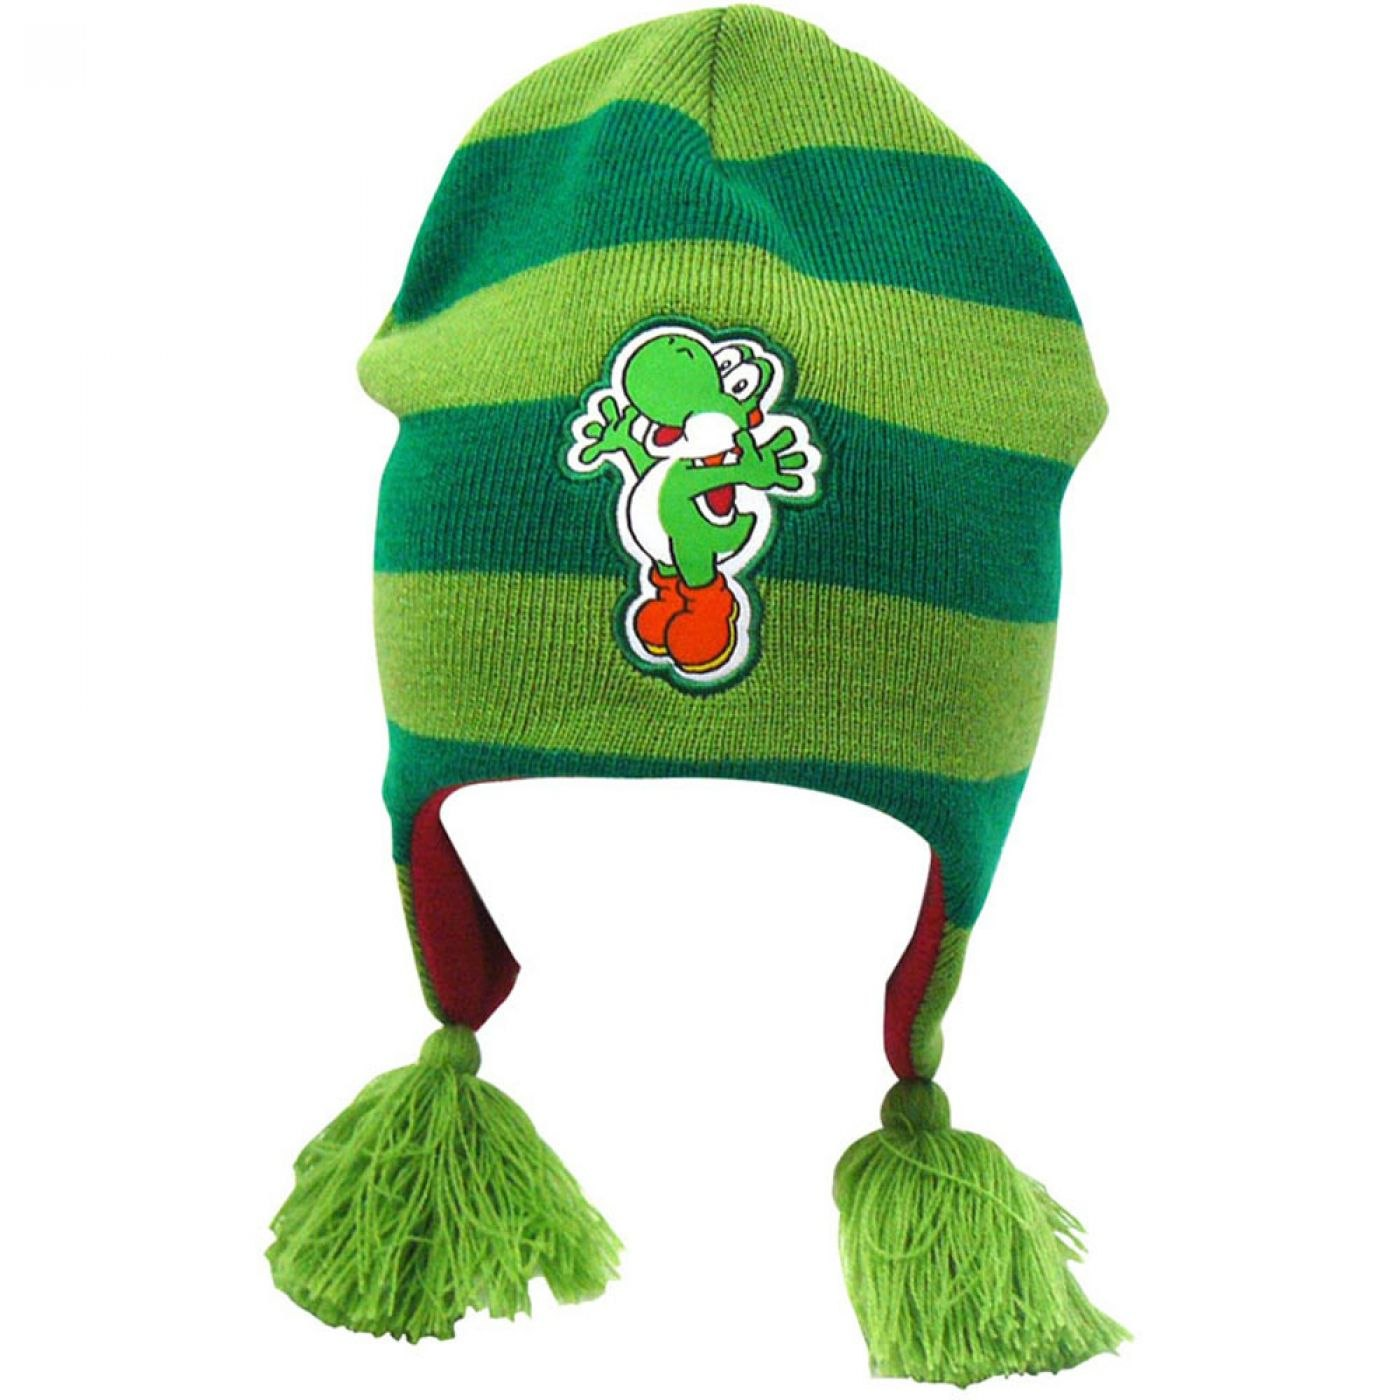 Nintendo Super Mario Bros beanie hat with tassels - Yoshi